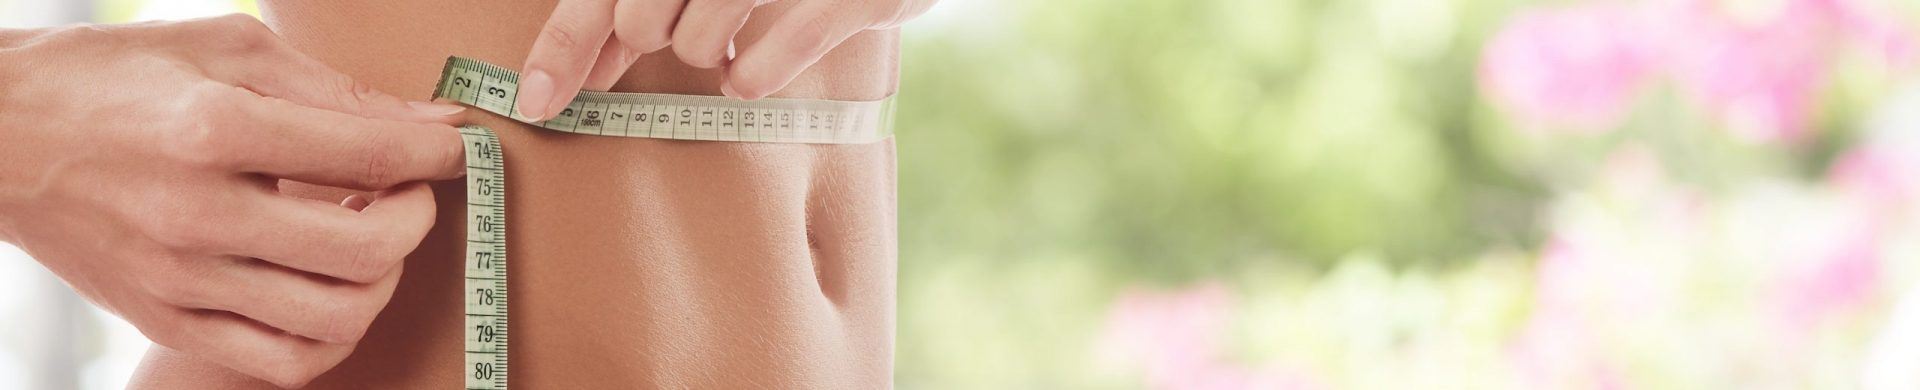 Calorie Investing: Lose Weight Without Hunger